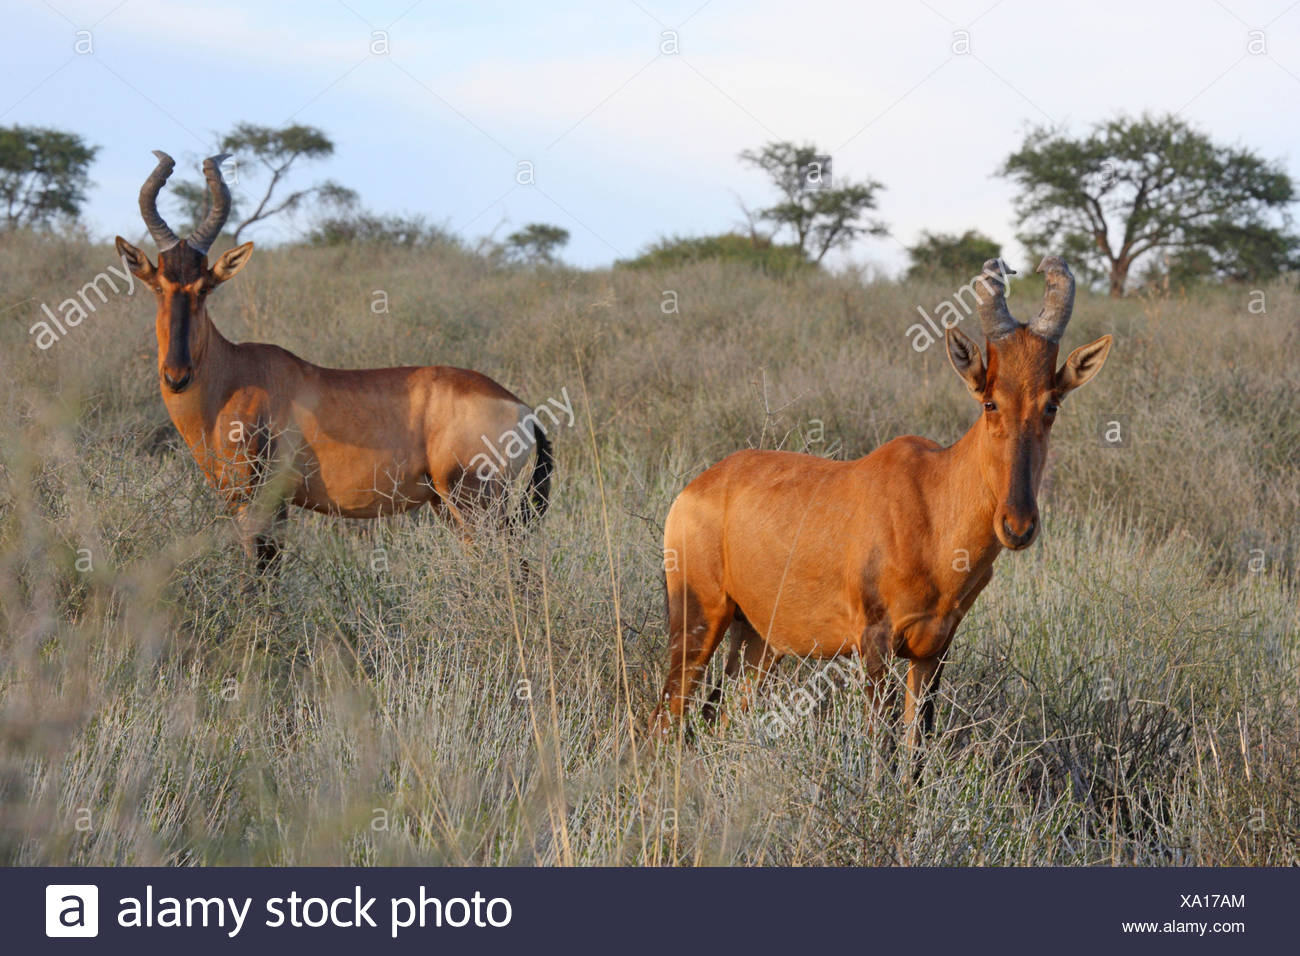 red hartebeest (Alcelaphus buselaphus), two animals in the savannah, South Africa, Kgalagadi Transfrontier National Park Stock Photo